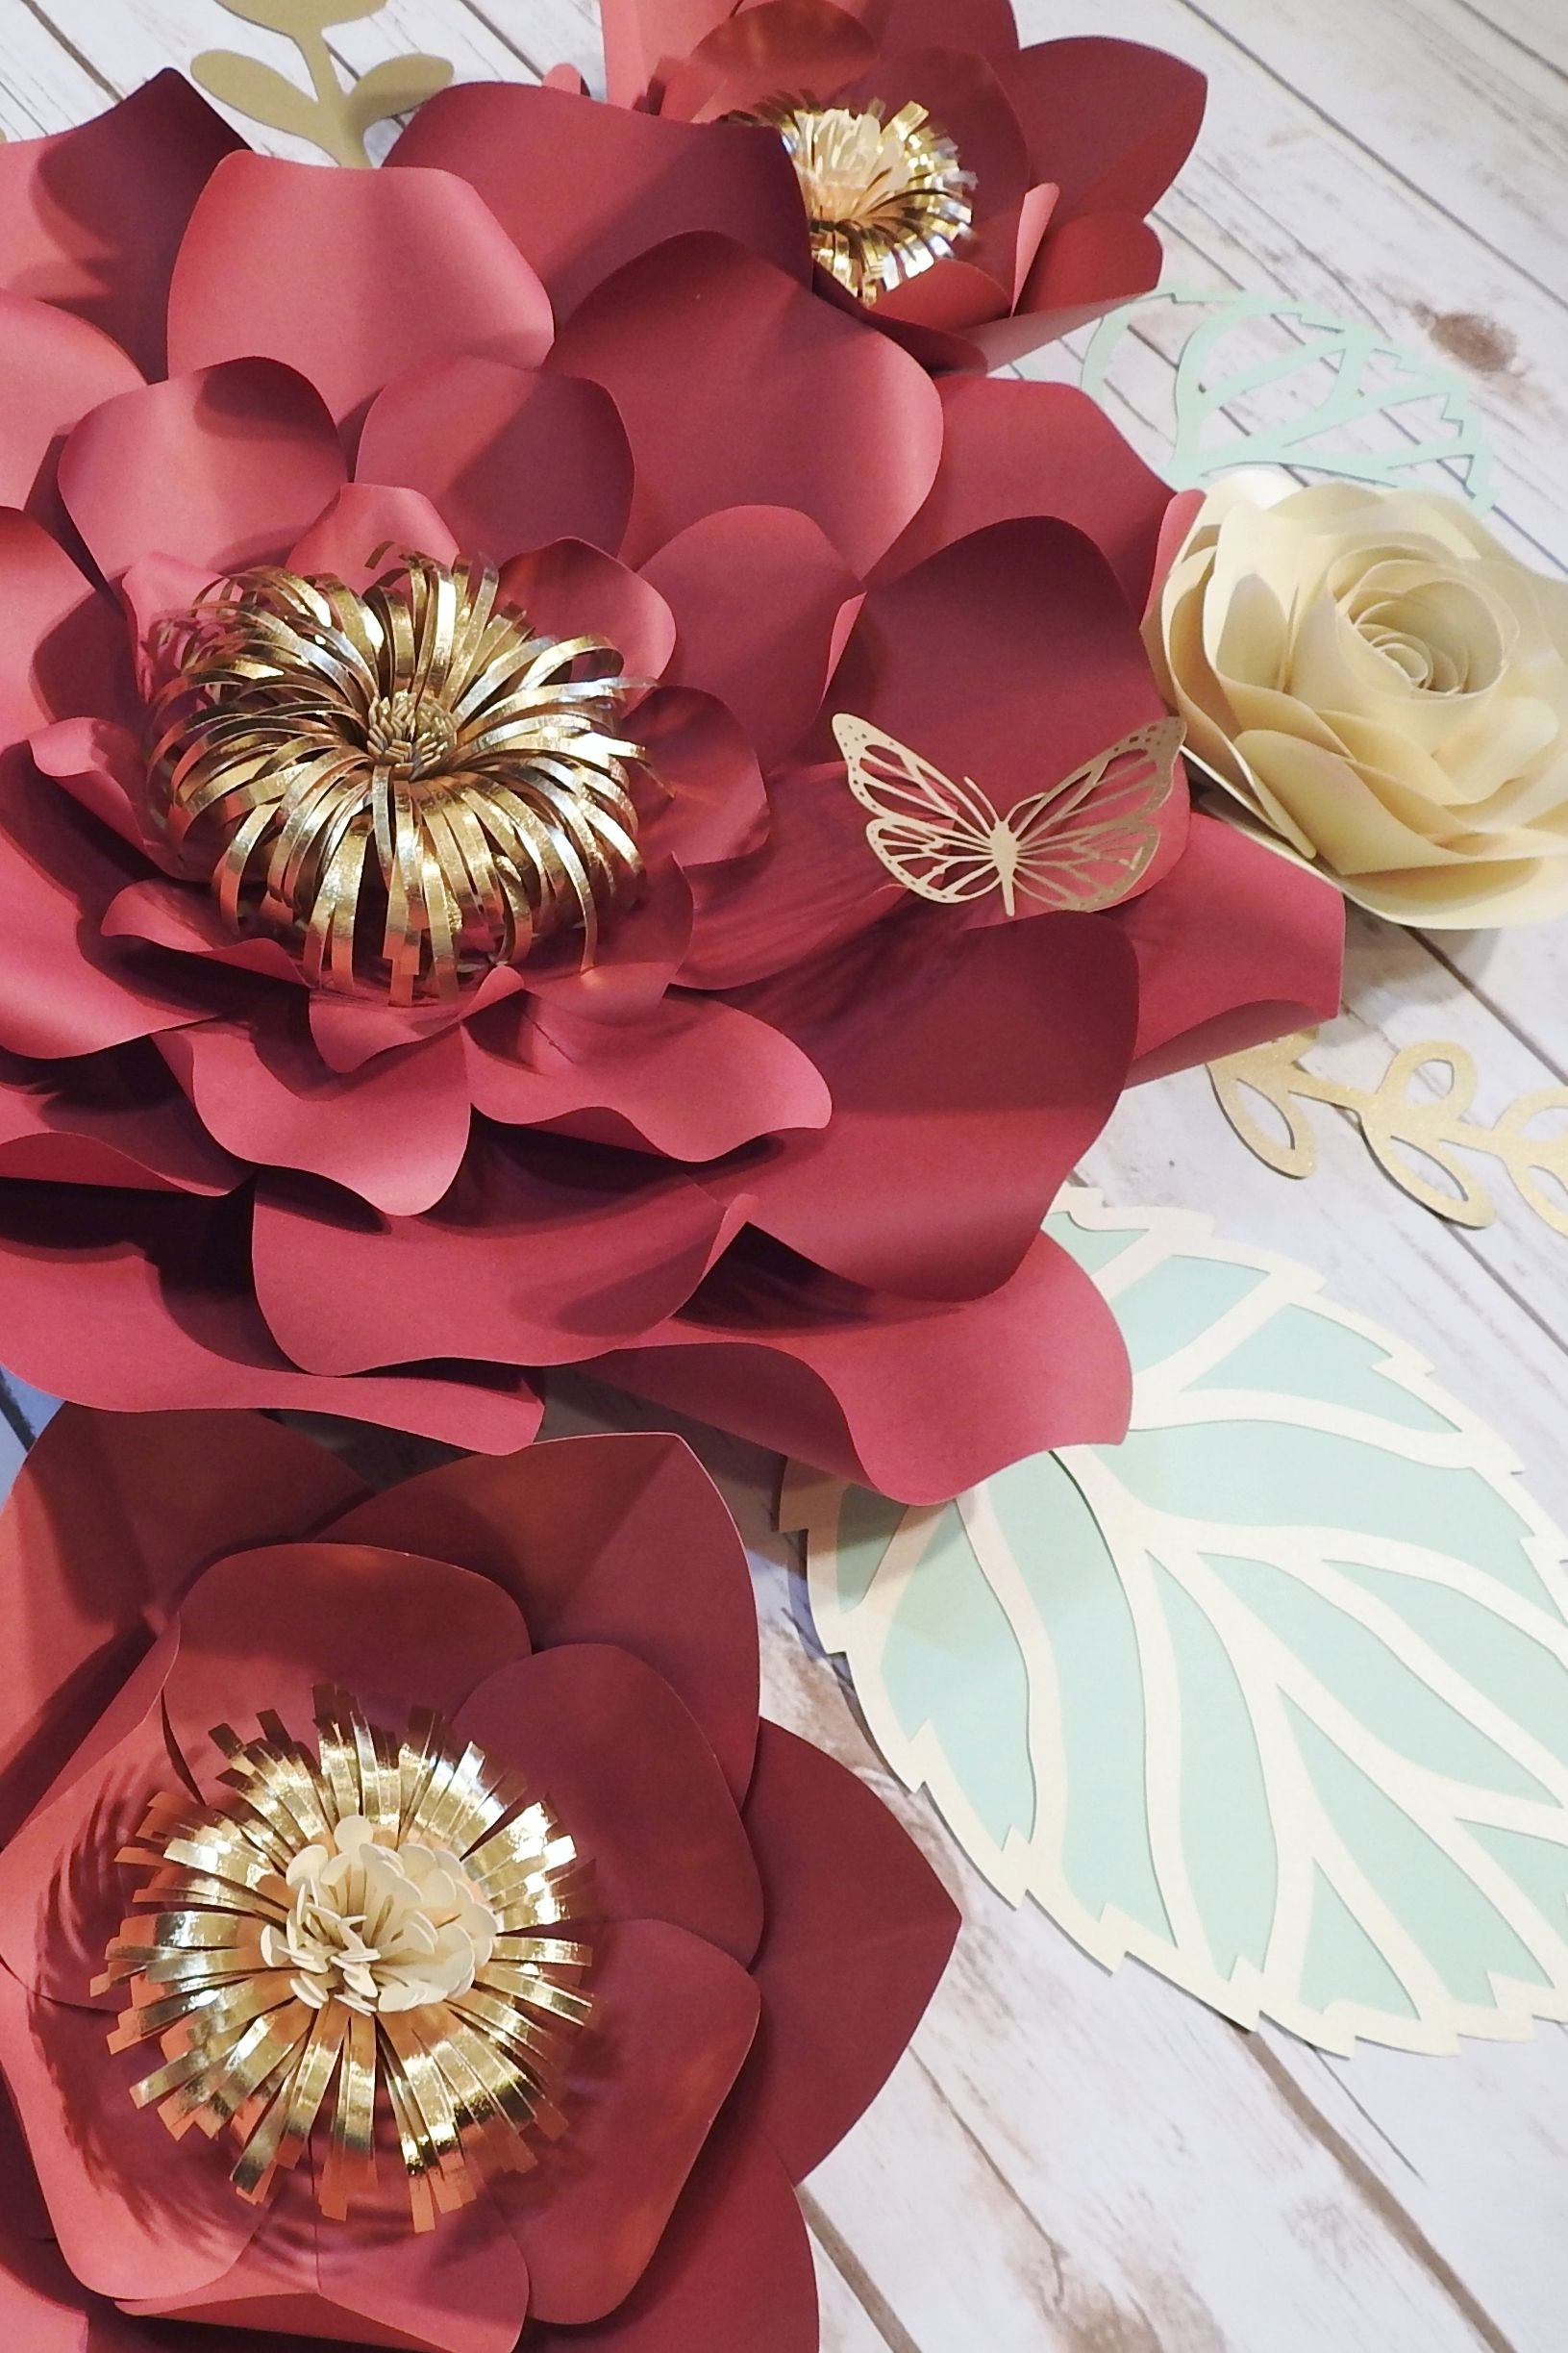 Large Paper Flowers Wall Decor Burgundy Wedding Backdrop Etsy Large Paper Flowers Paper Flower Decor Paper Flowers